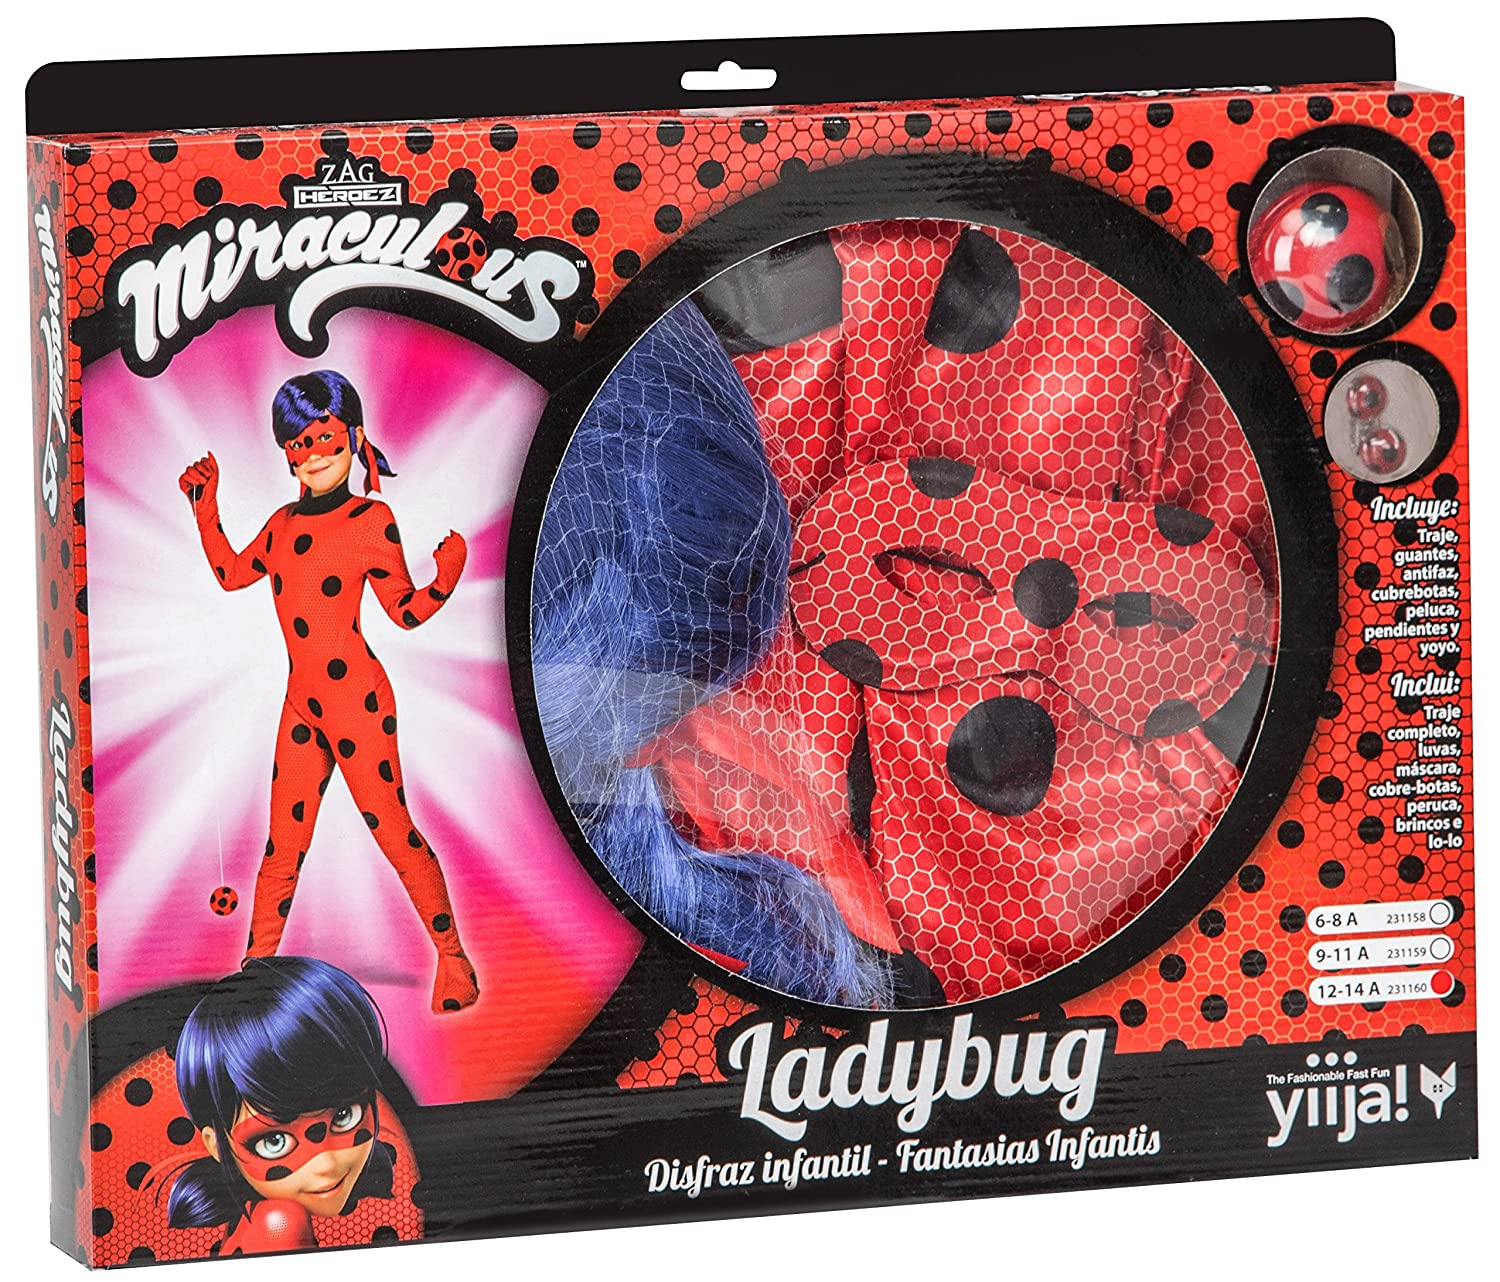 My Other Me Me Me- Miraculous Ladybug Lady Bug Disfraz, Color Rojo, 6-8 AÑOS (231158): Amazon.es: Juguetes y juegos